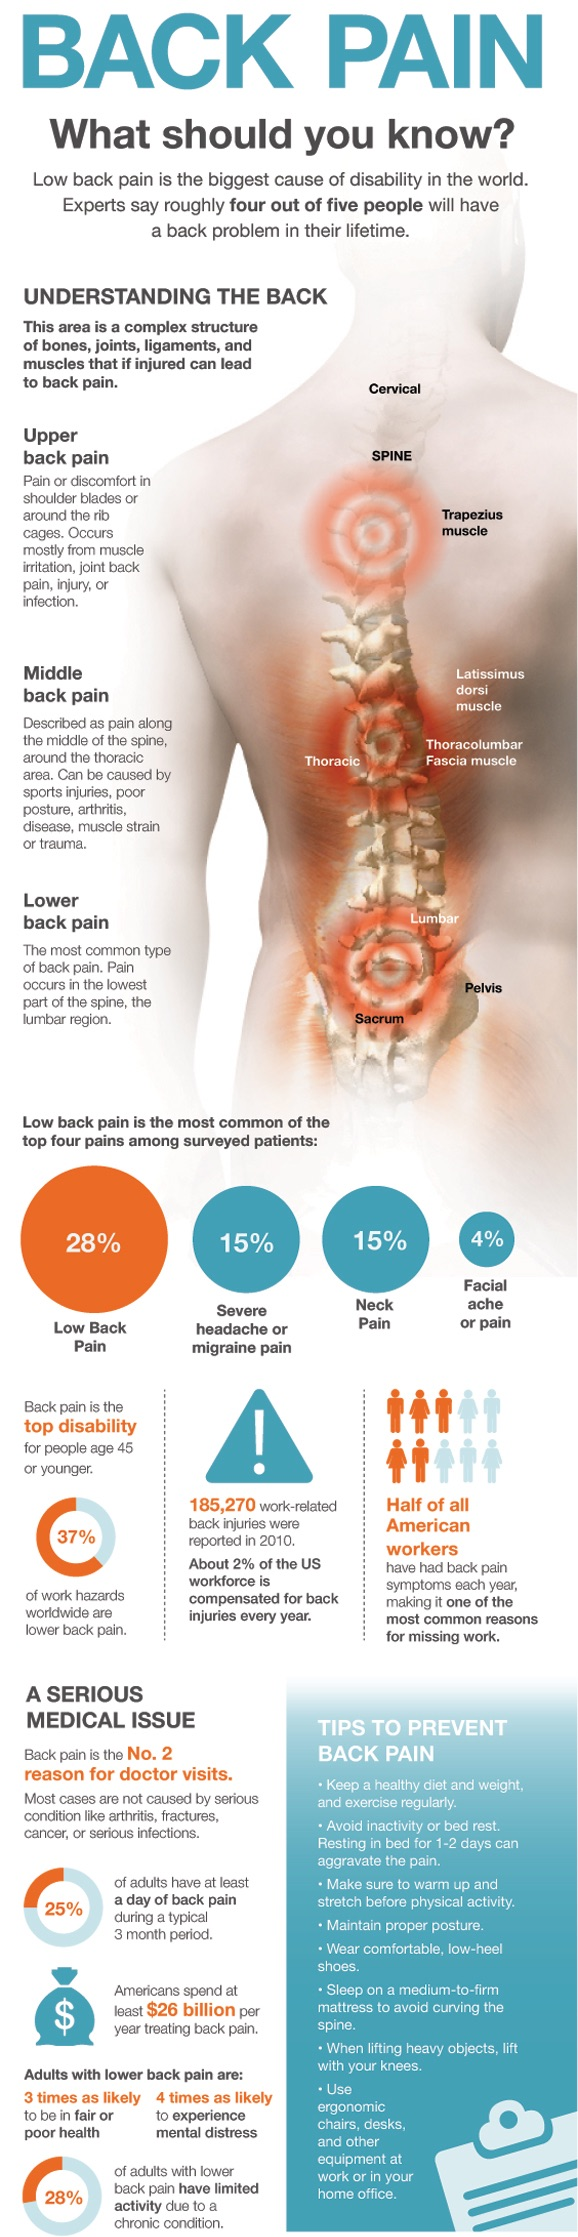 back pain treatment graphic